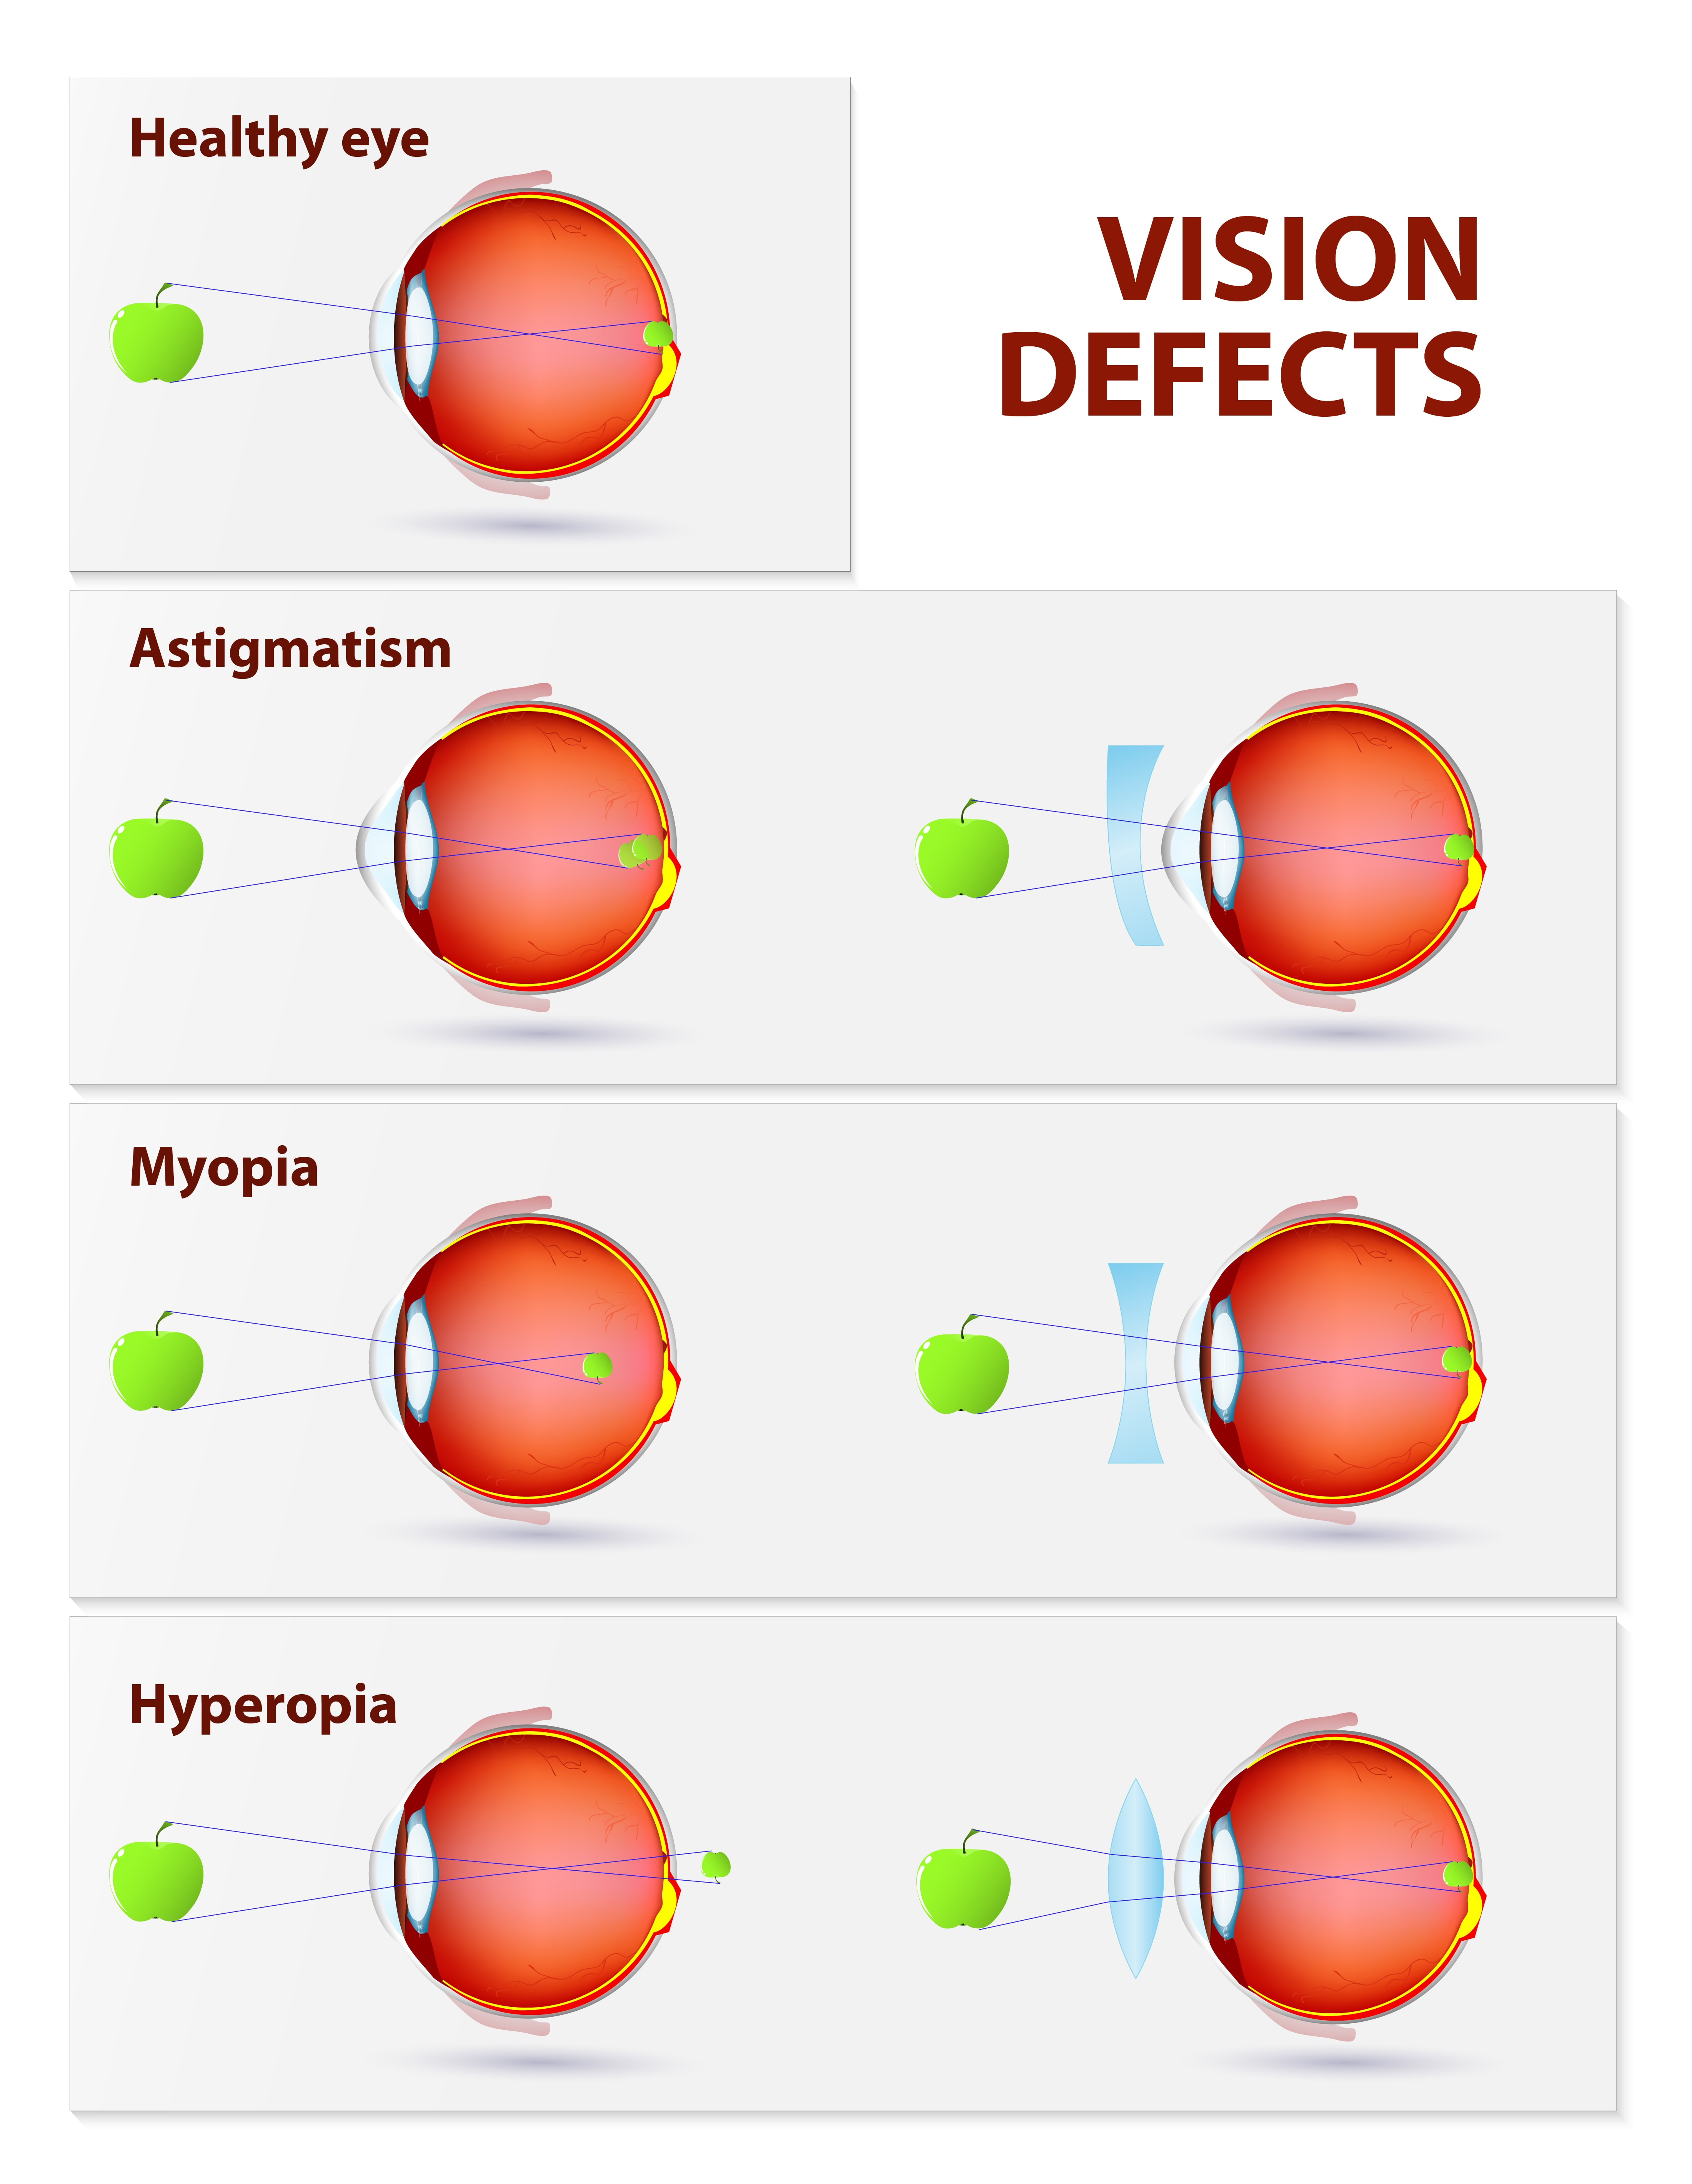 Refractive surgery corrects vision defects such as Astigmatism, Myopia and Hyperopia